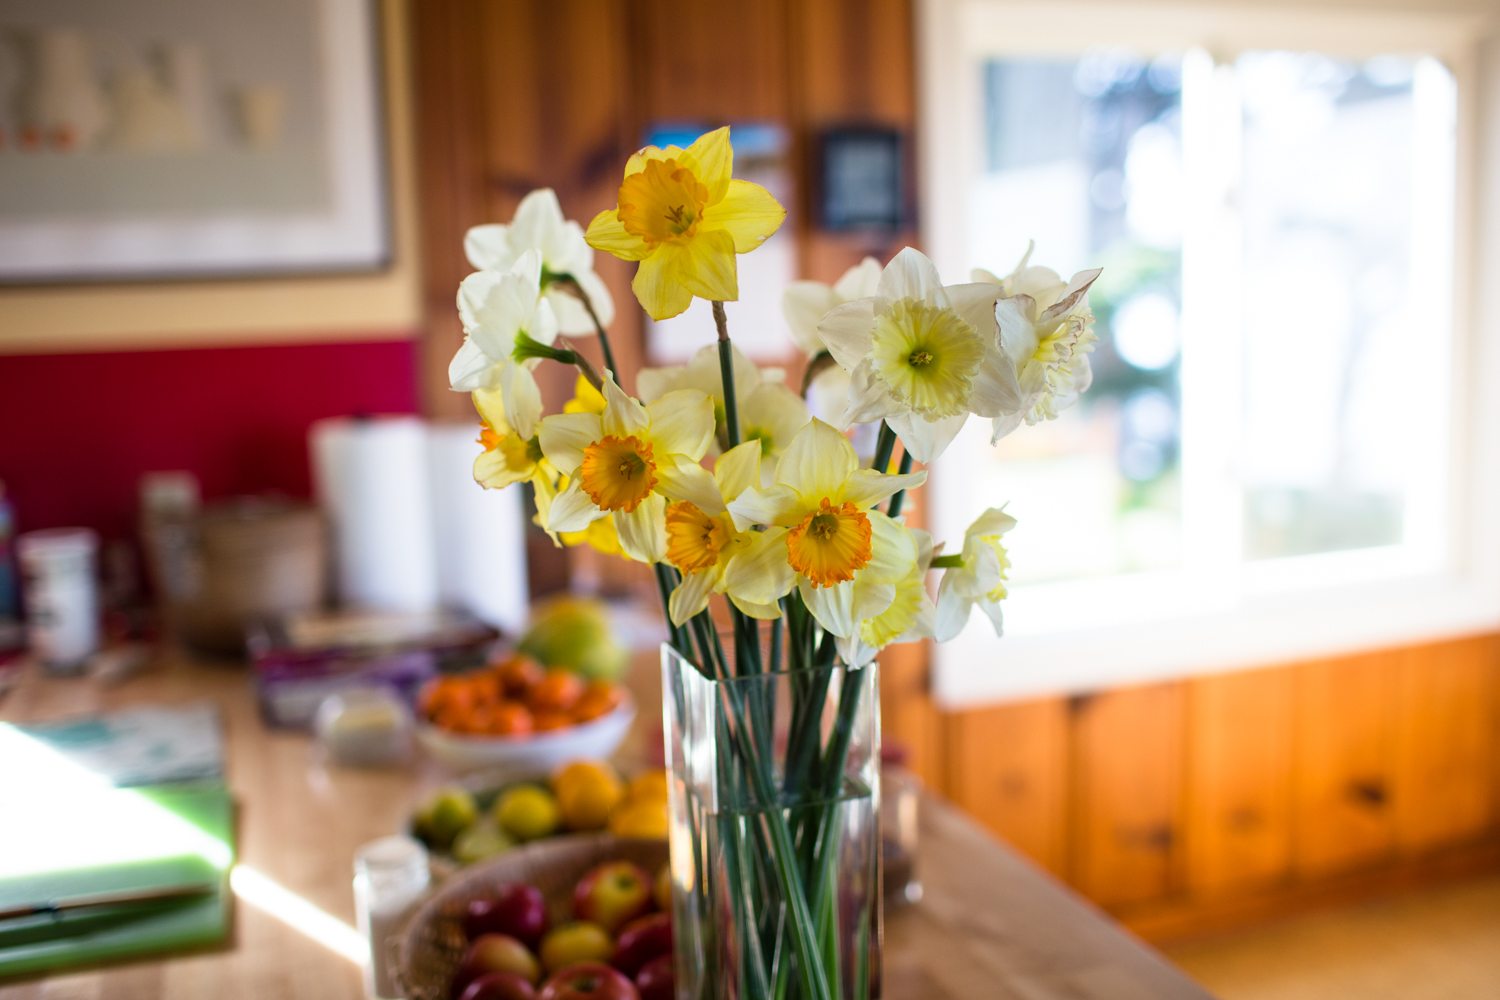 daffodils lifestyle photographer nevada county